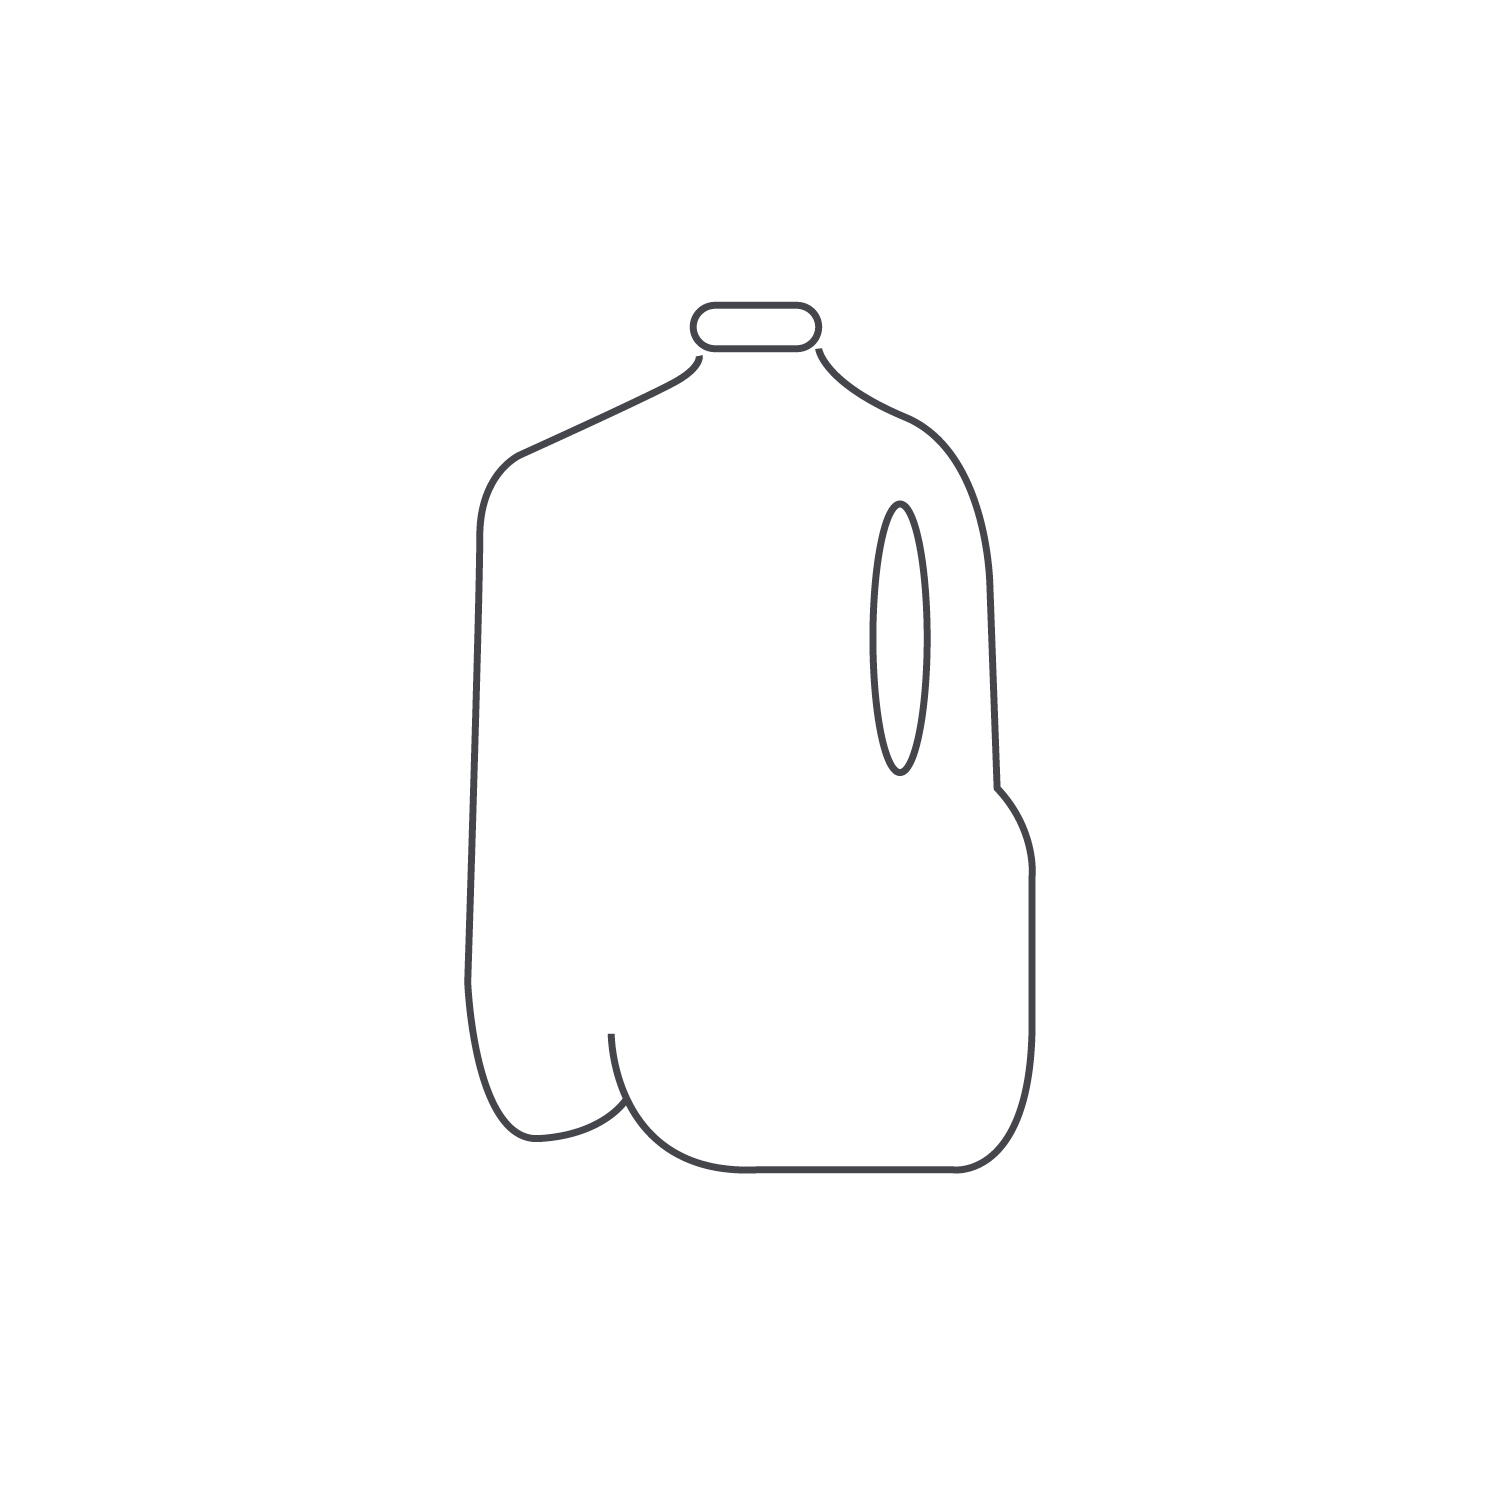 Dairy-Icon93.jpg